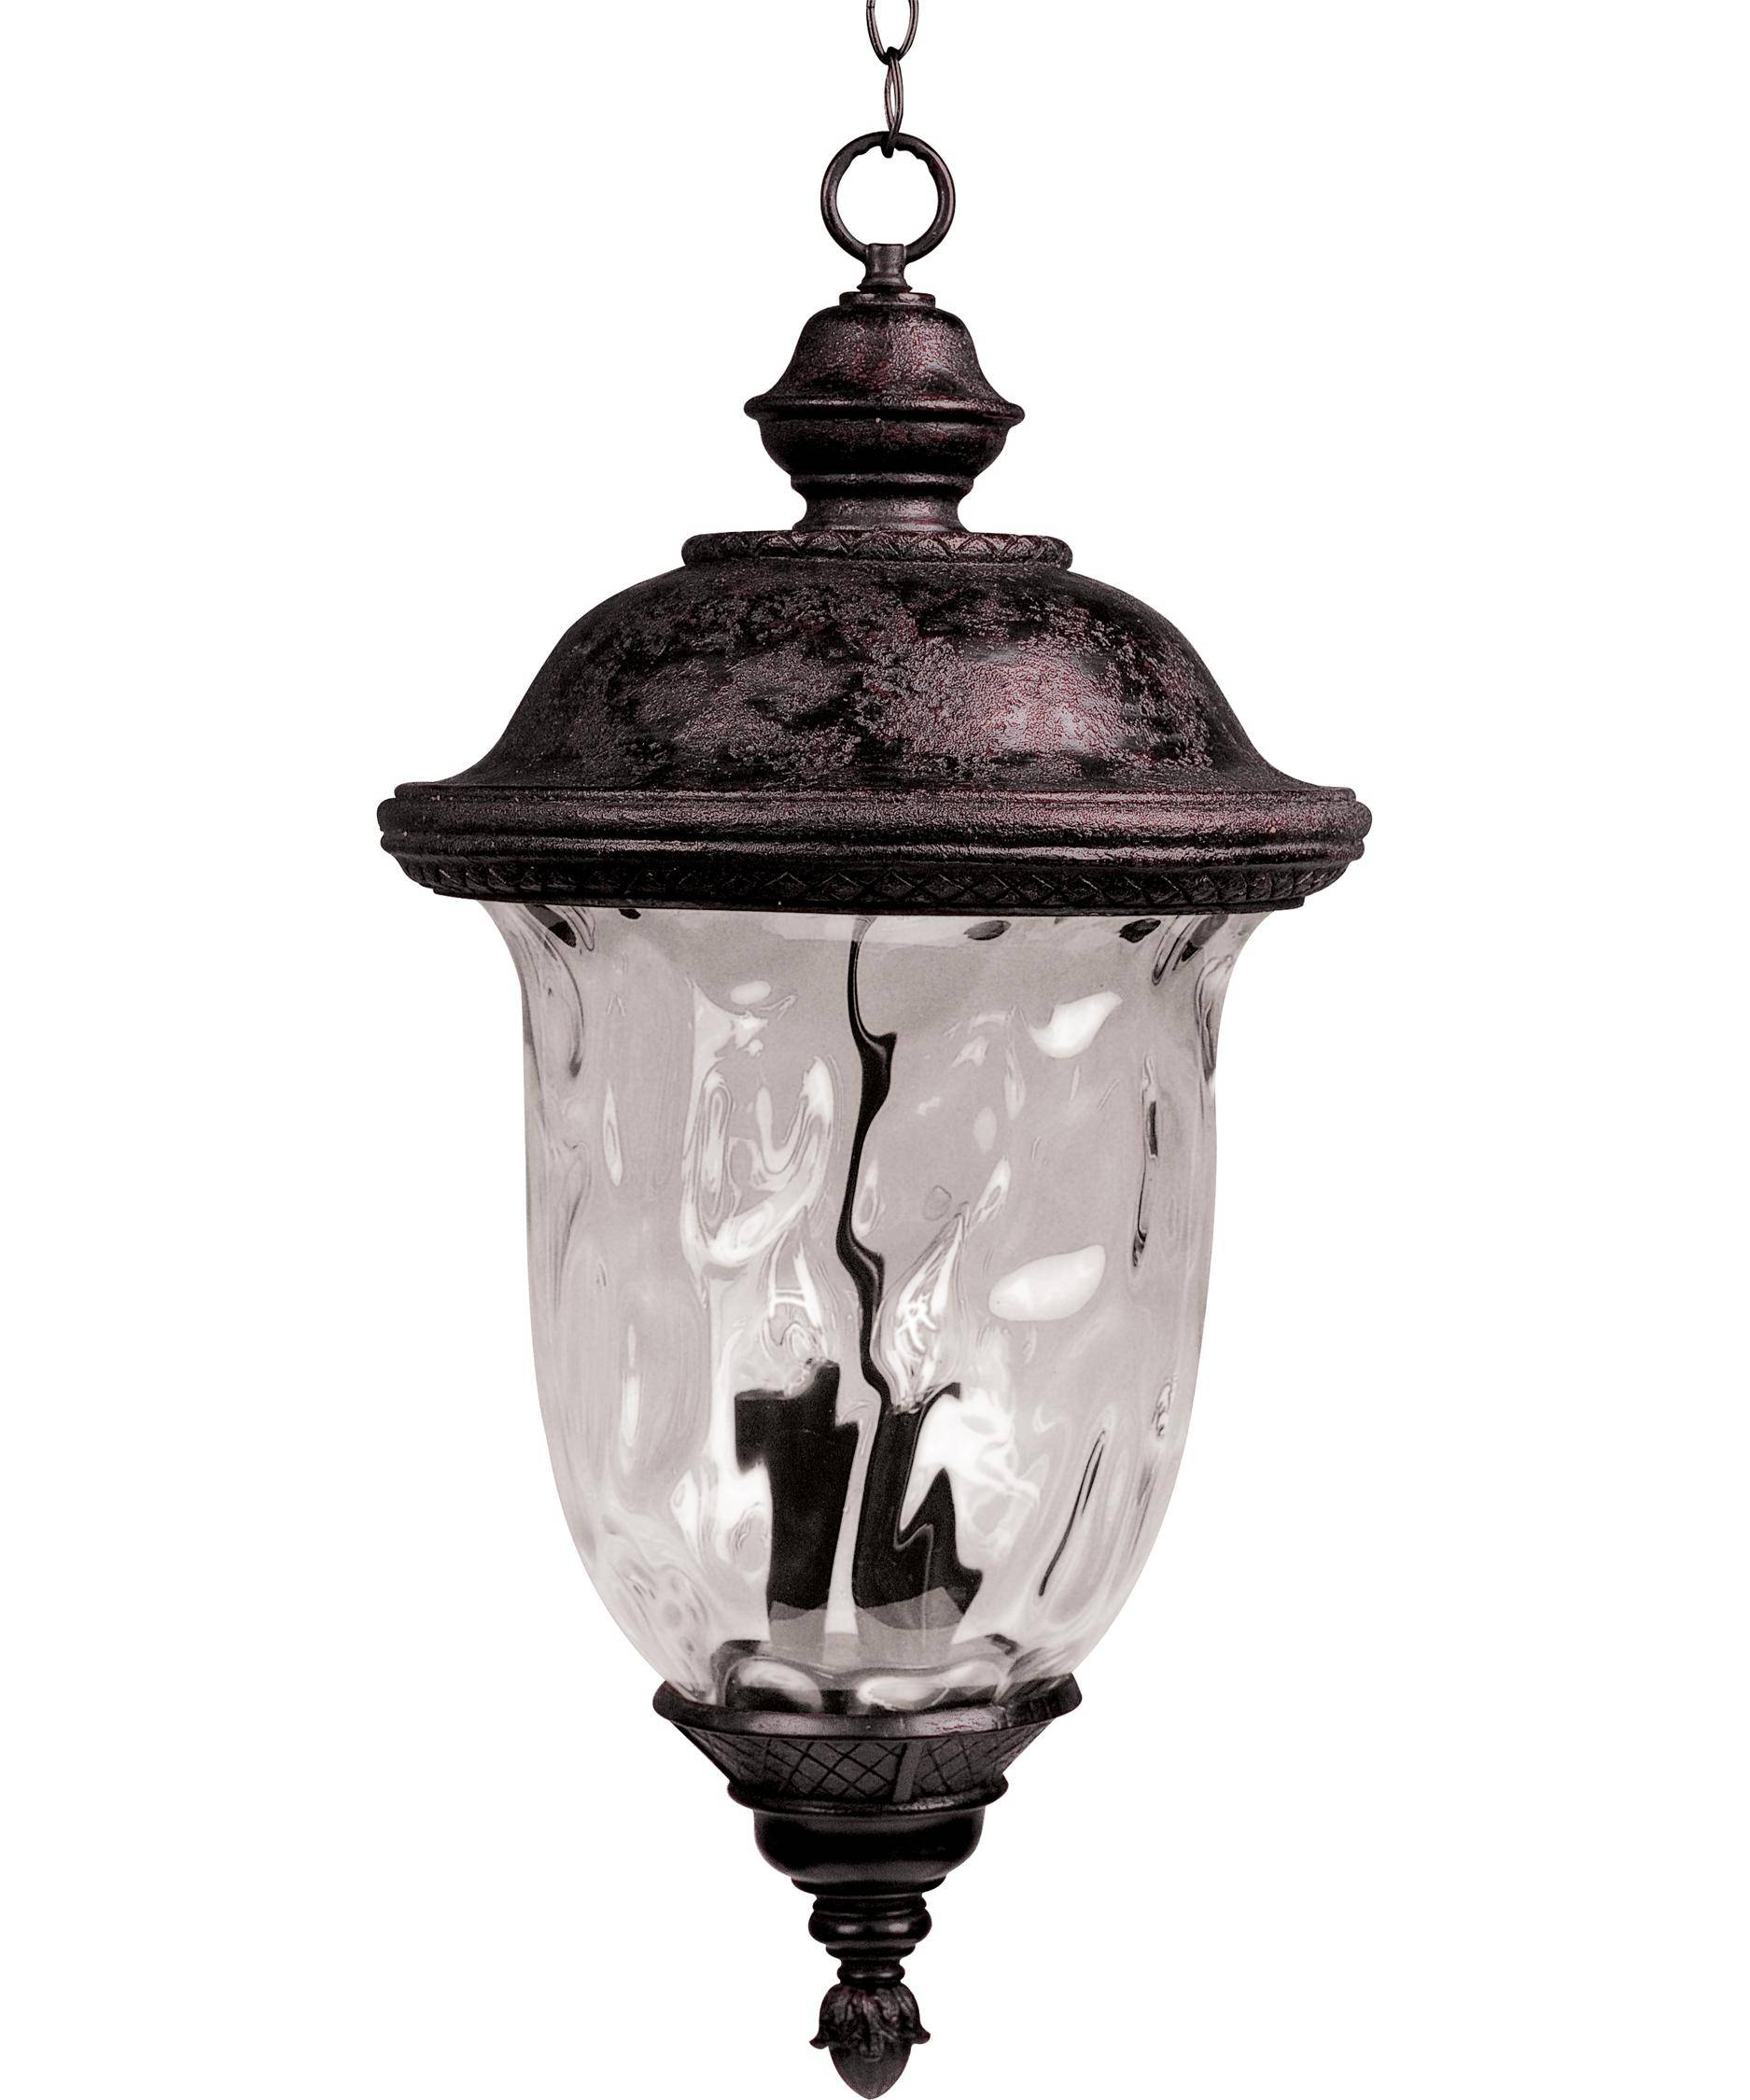 Maxim Lighting 40427 Carriage House Vx 13 Inch Wide 3 Light with Carriage Pendant Lights (Image 7 of 15)